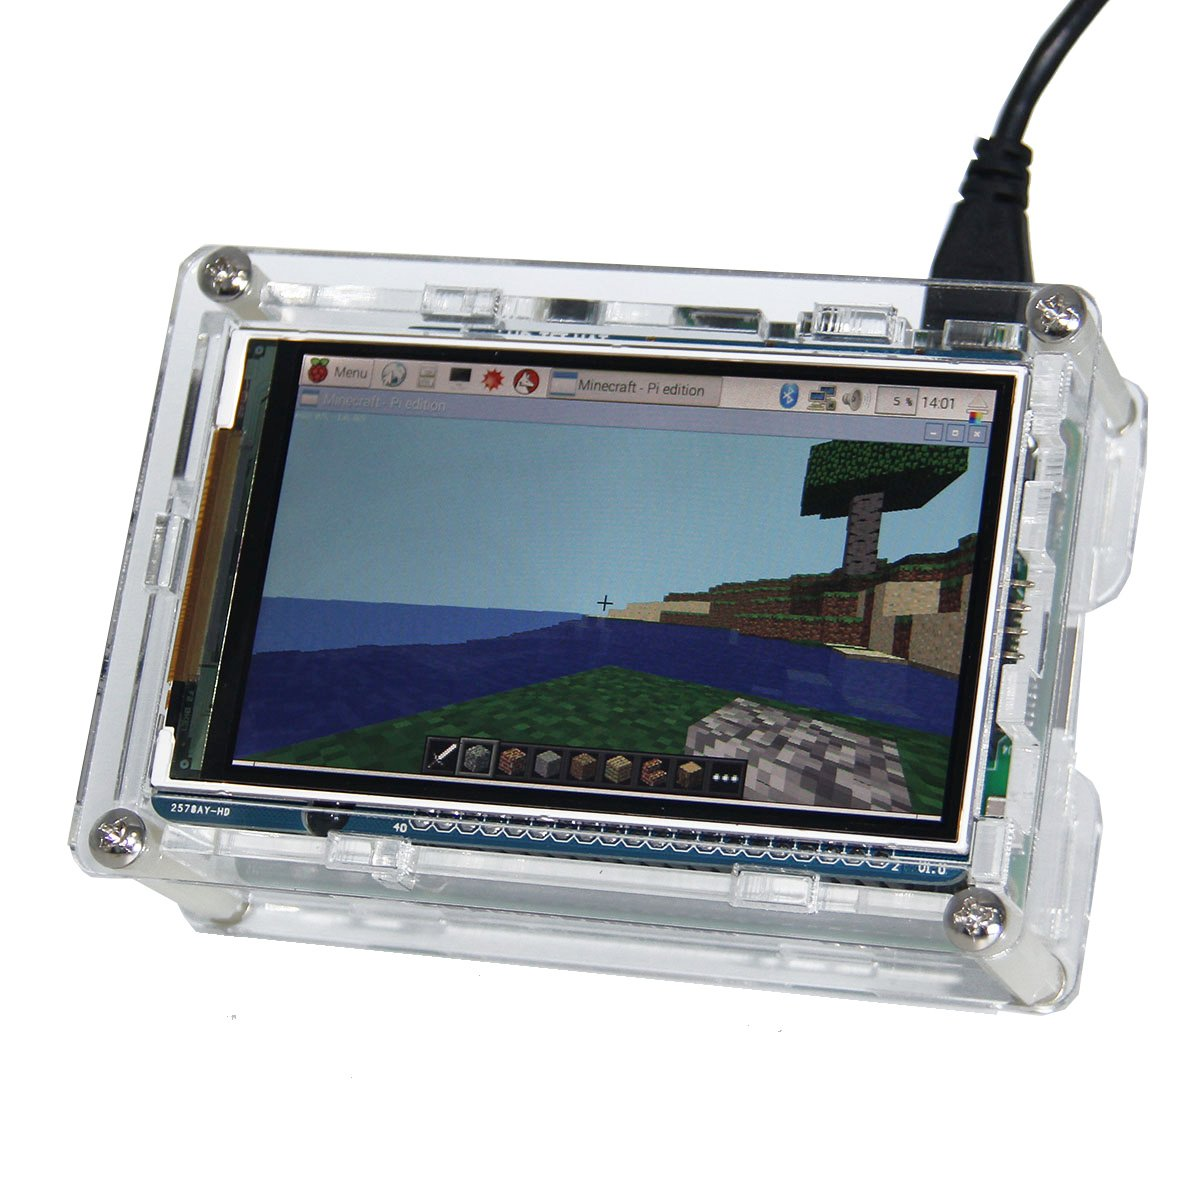 Raspberry Pi 3 Screen Geekworm 60 Fps 800x480 High Wiringpi Library Sudo Make Command Not Found Build 59 Resolution 35 Inch Hd Speed Tft Display Shield With Case For